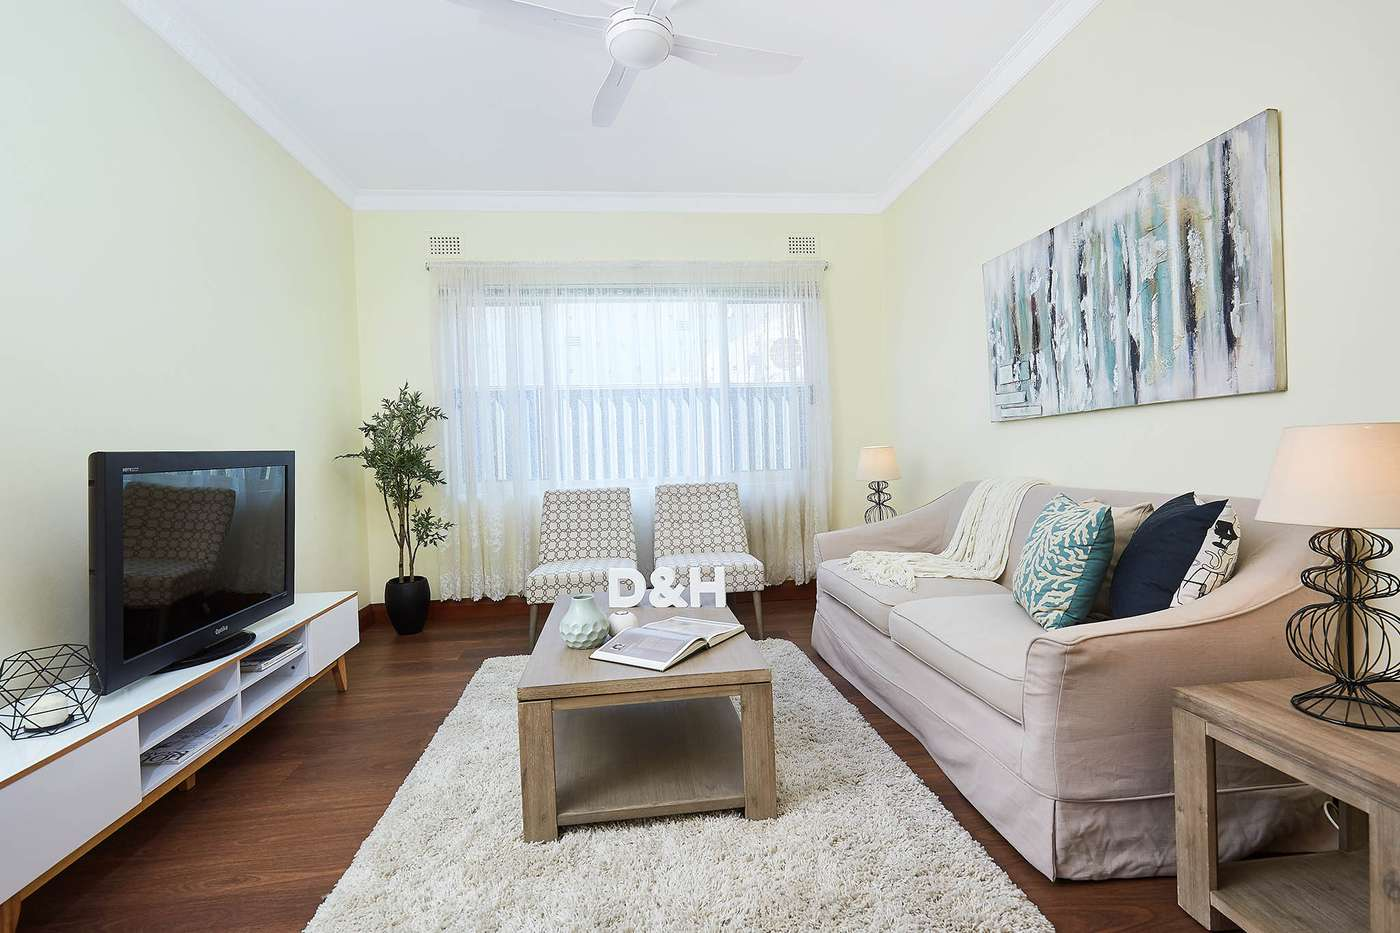 Main view of Homely house listing, 360 West Botany Road, Brighton-le-sands, NSW 2216